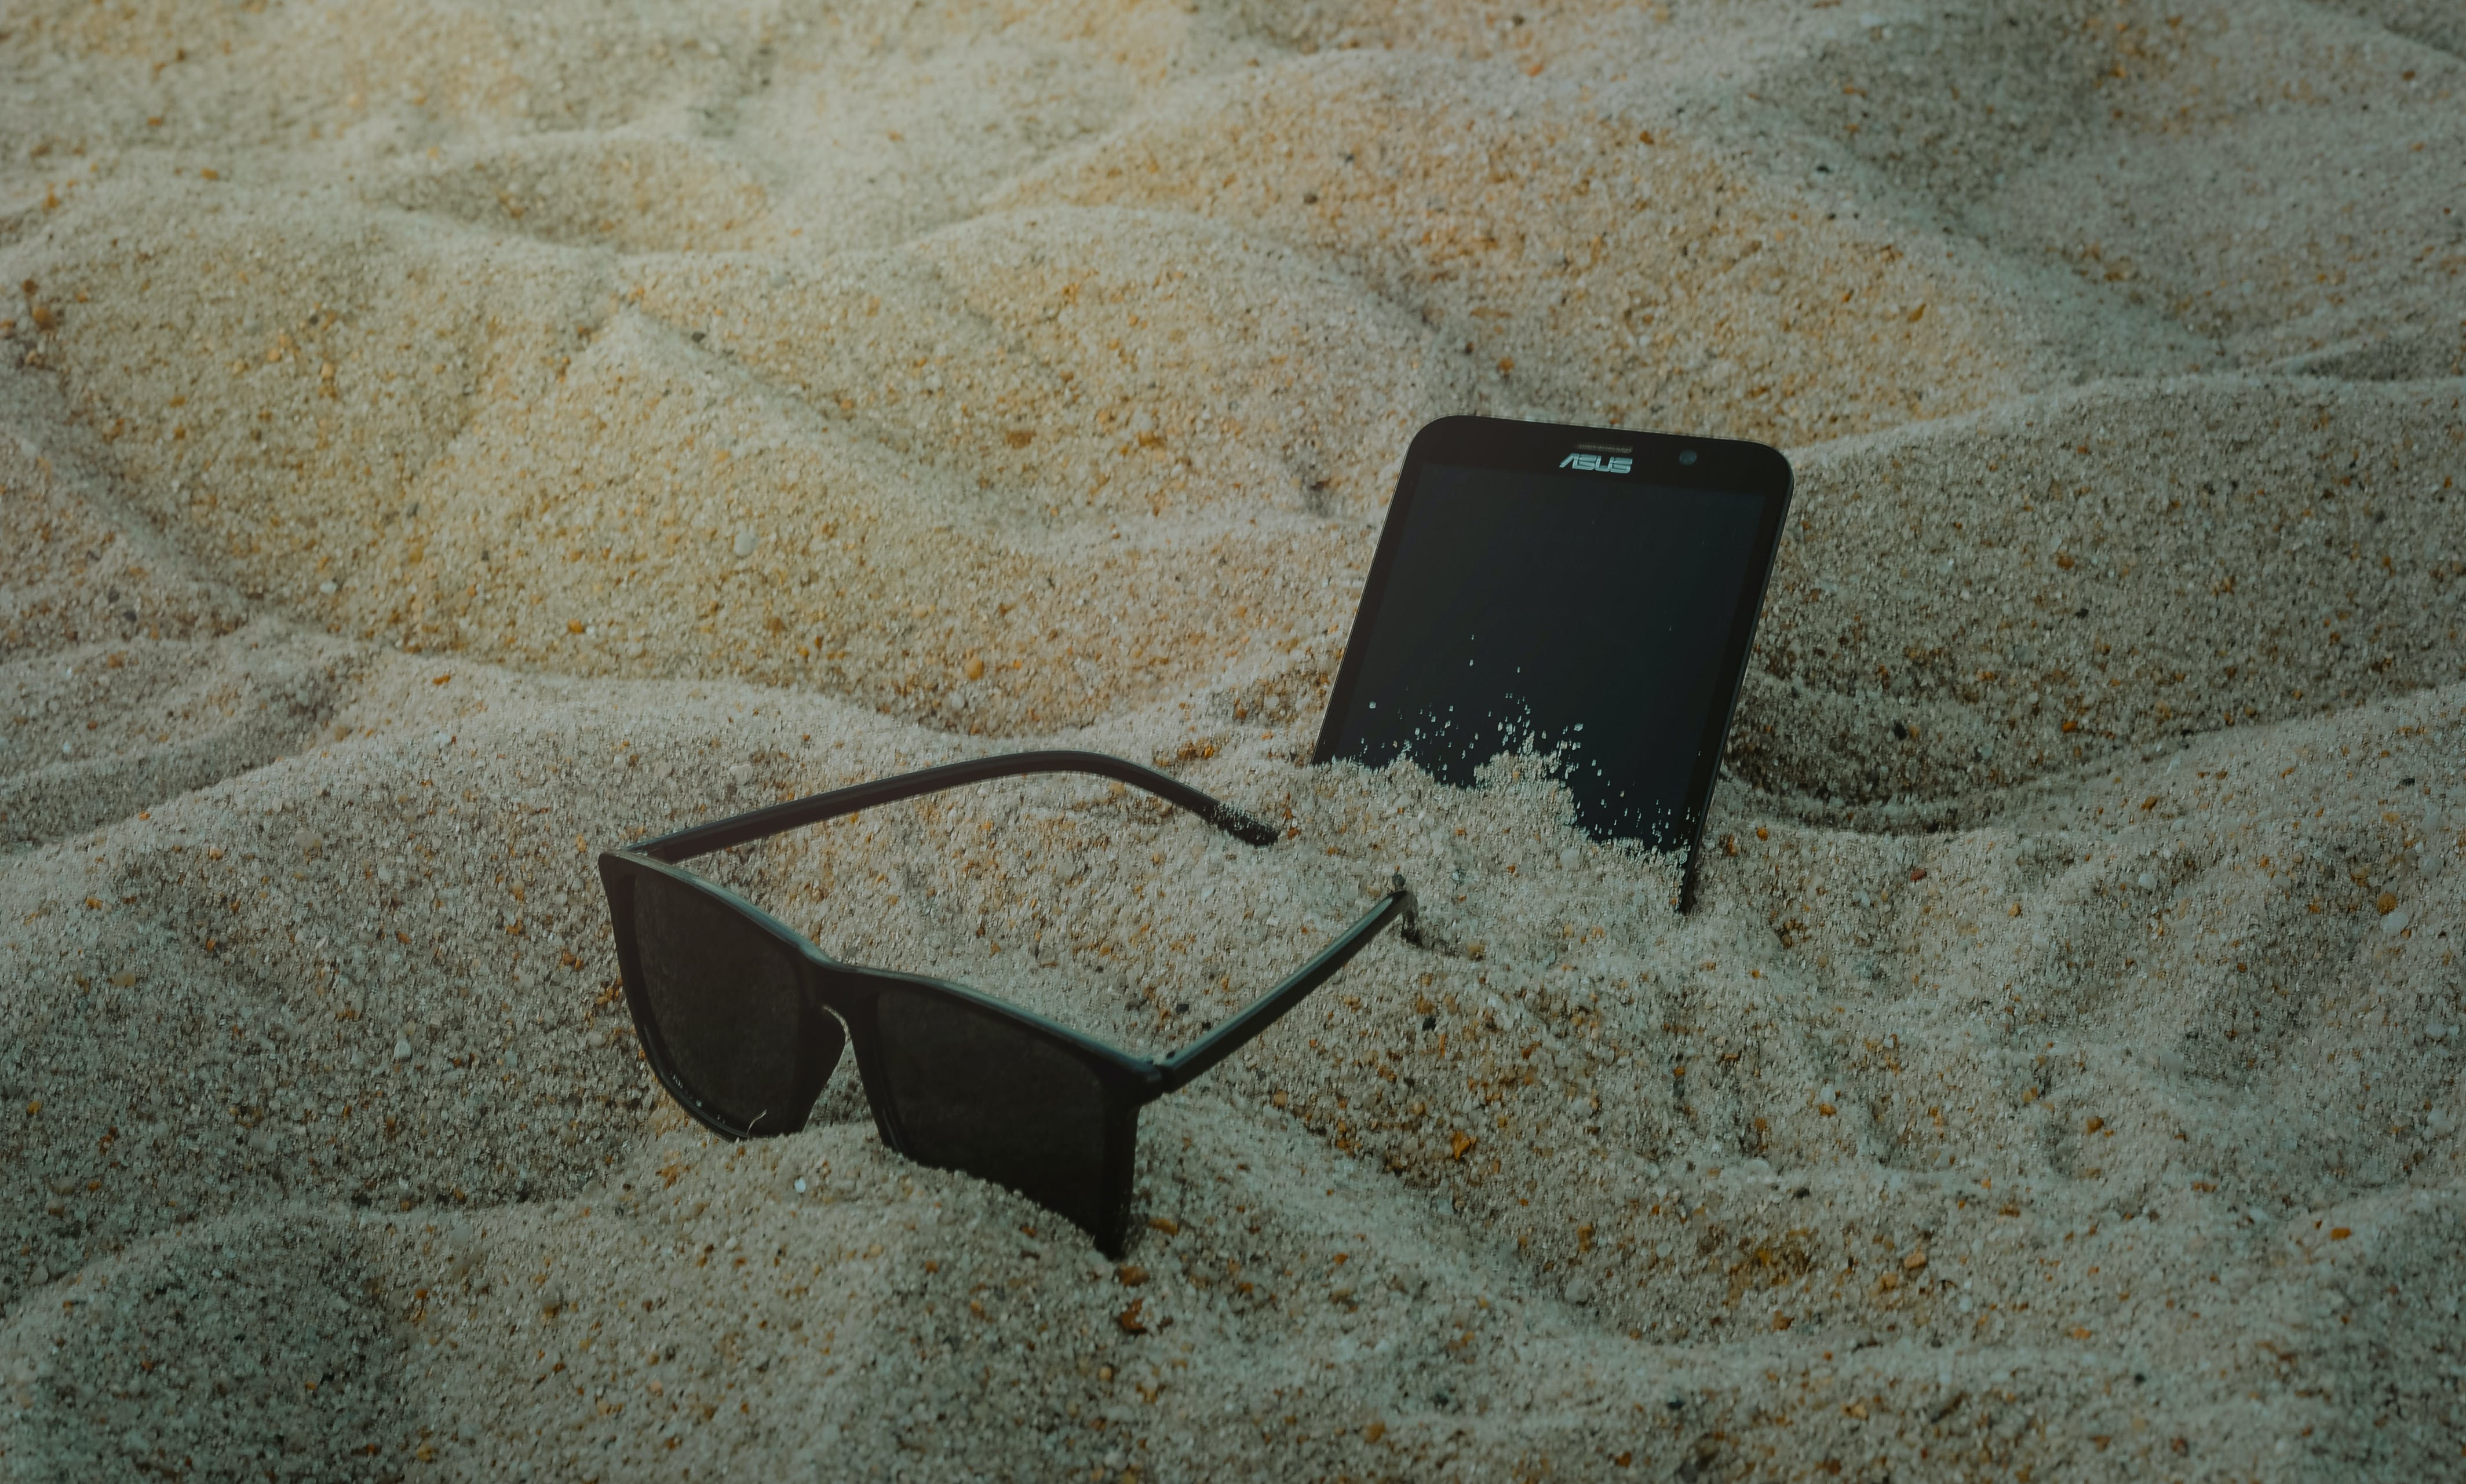 Photo of Phone and Sunglasses on Sand